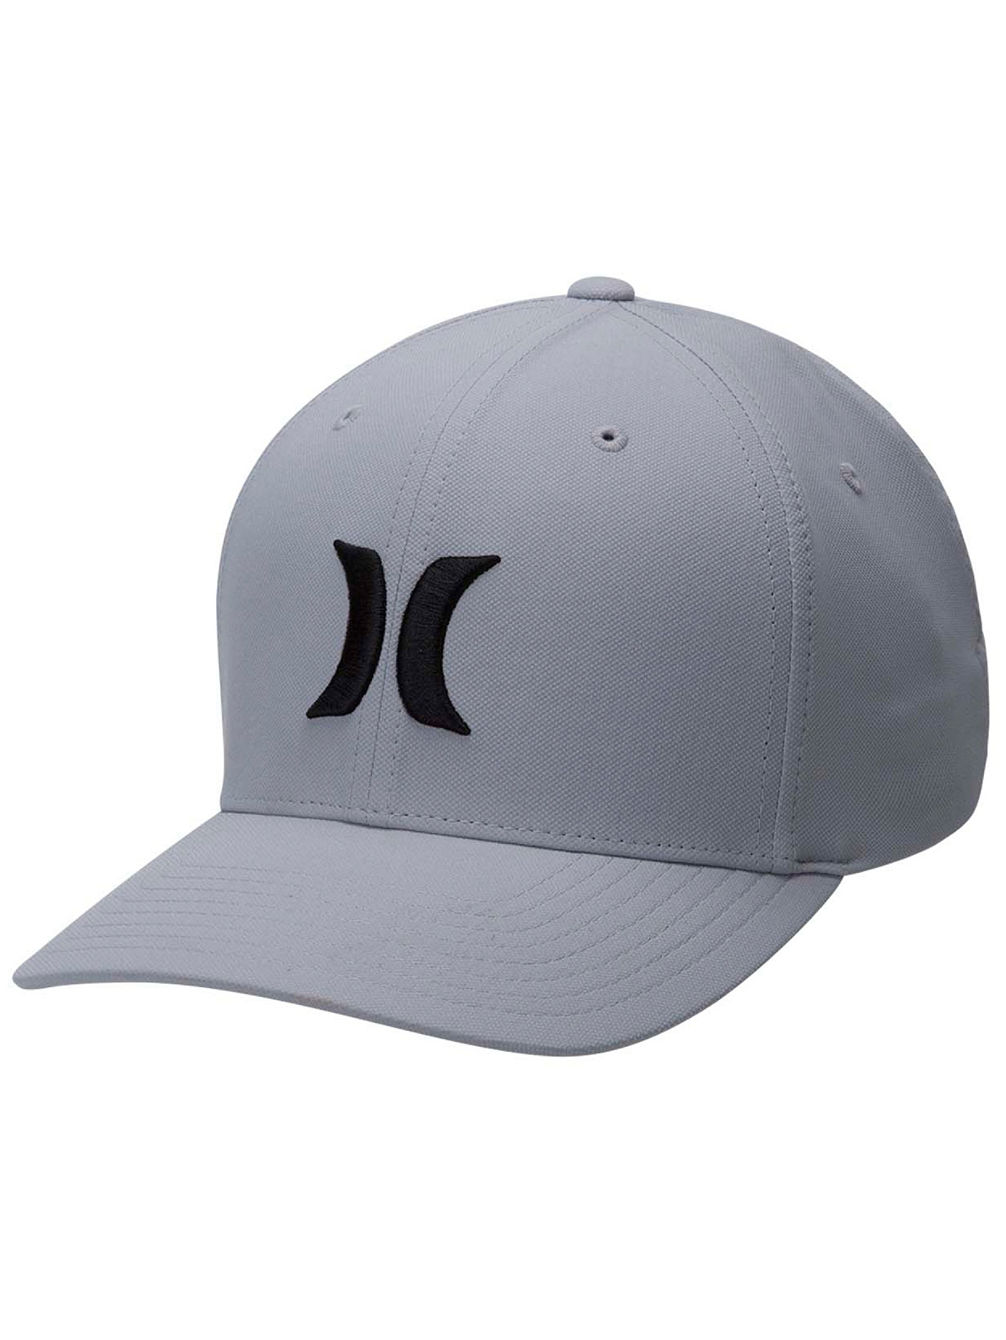 Dri-Fit One & Only Cap